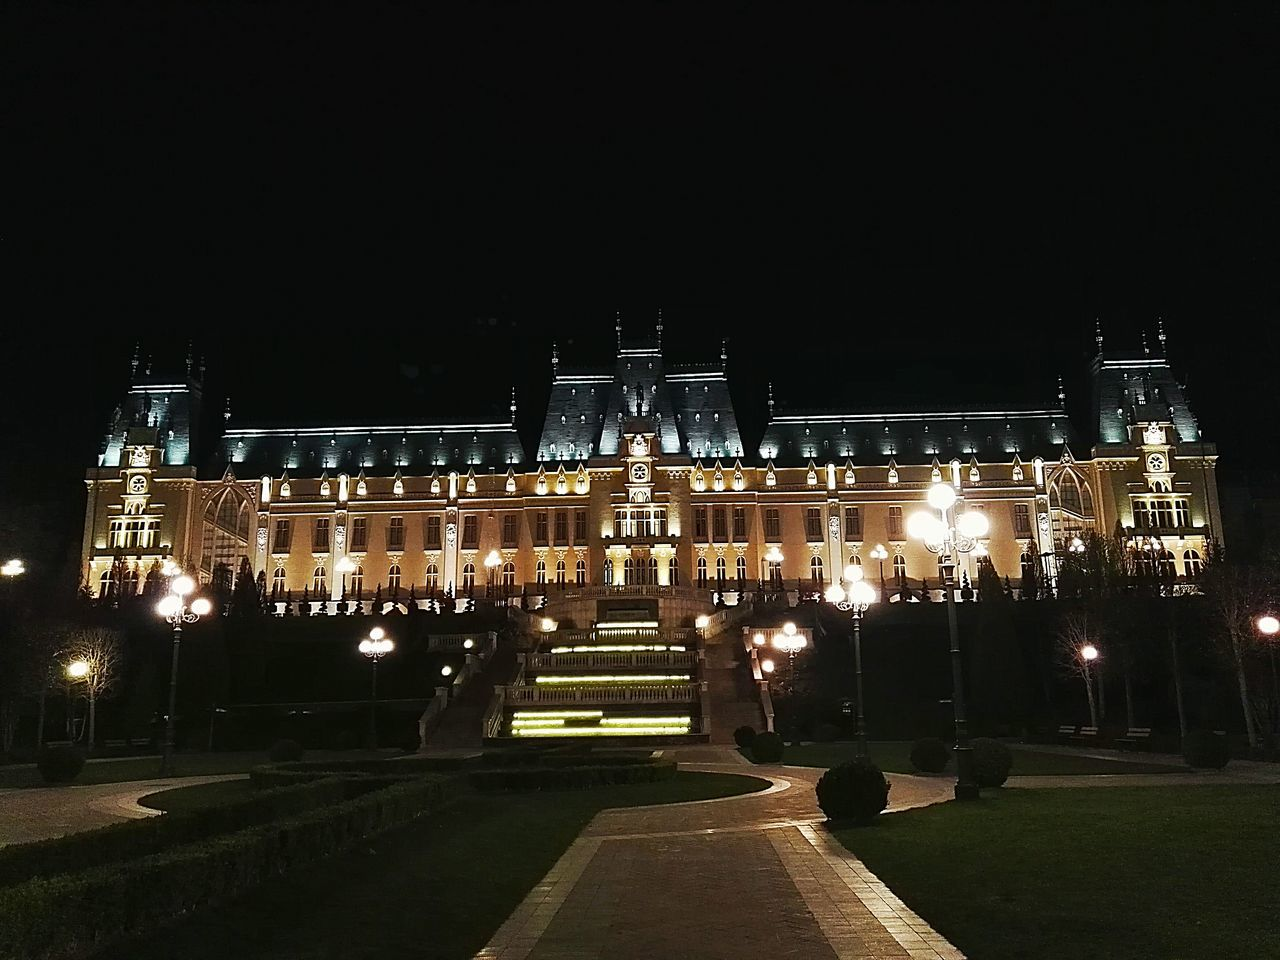 43 Golden Moments Palace Iasi Romania Palace Of Culture Night Lights Night Nightphotography Night View Night Photography Amazing View Amazing Place Amazing